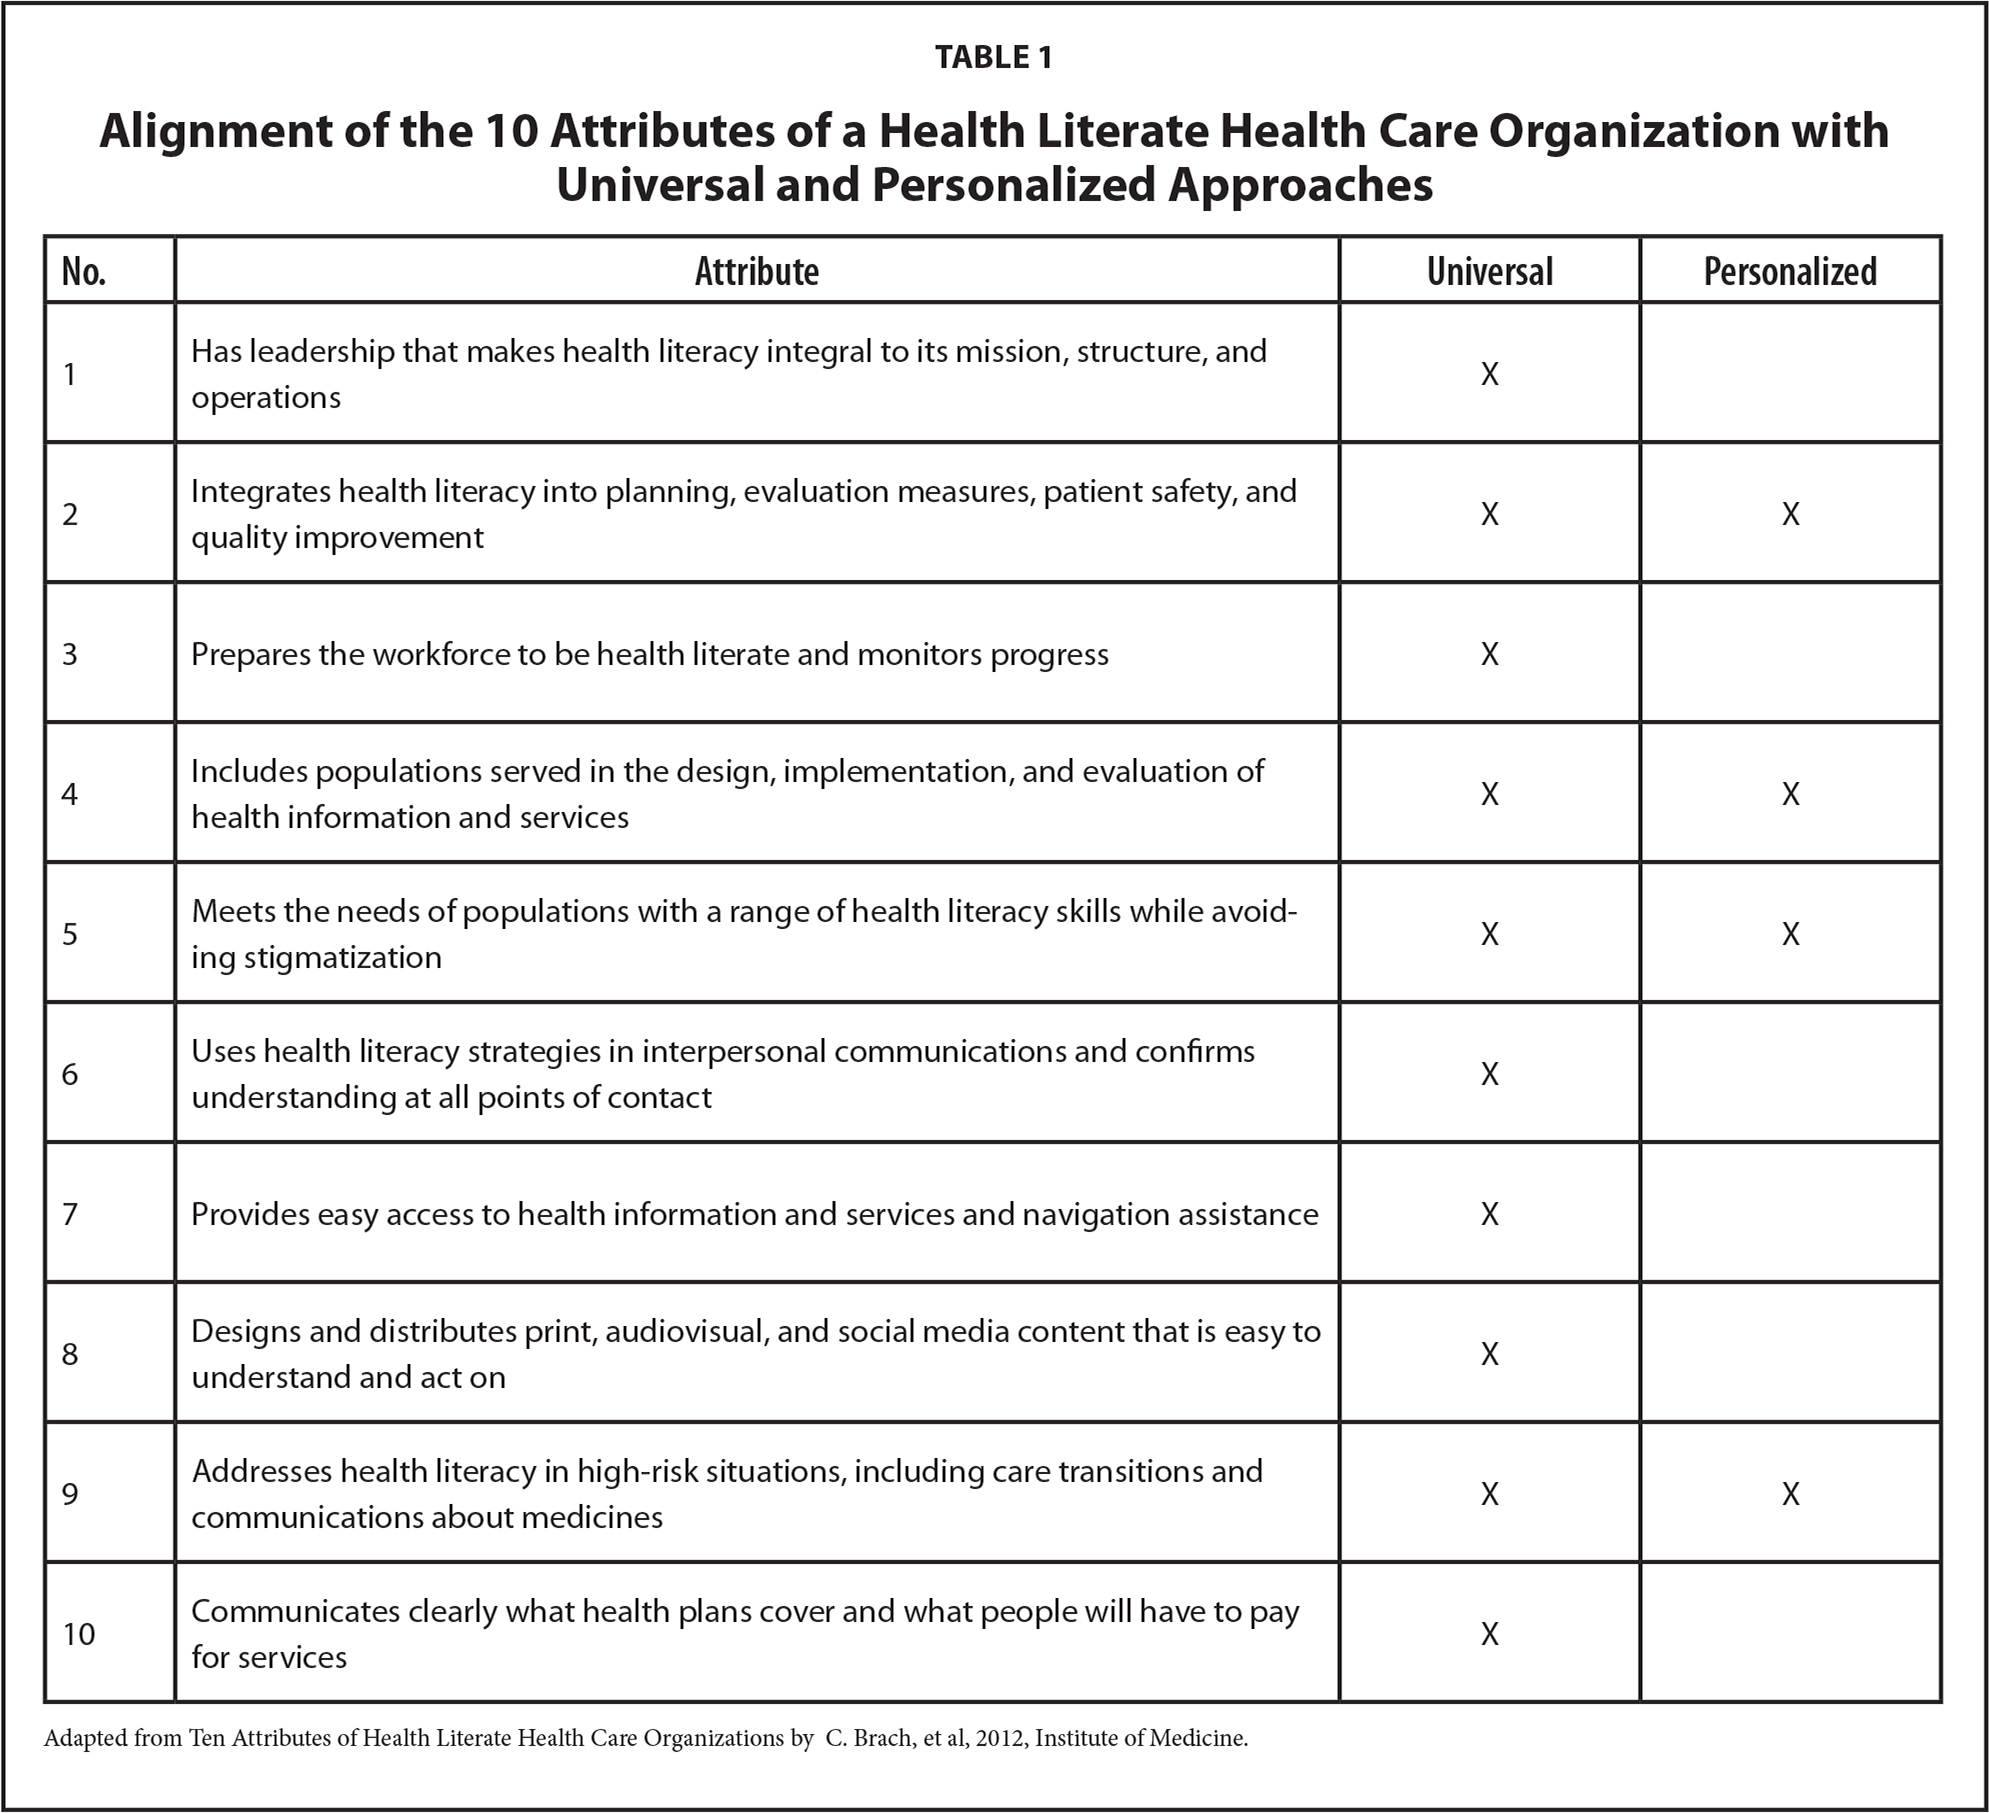 Alignment of the 10 Attributes of a Health Literate Health Care Organization with Universal and Personalized Approaches